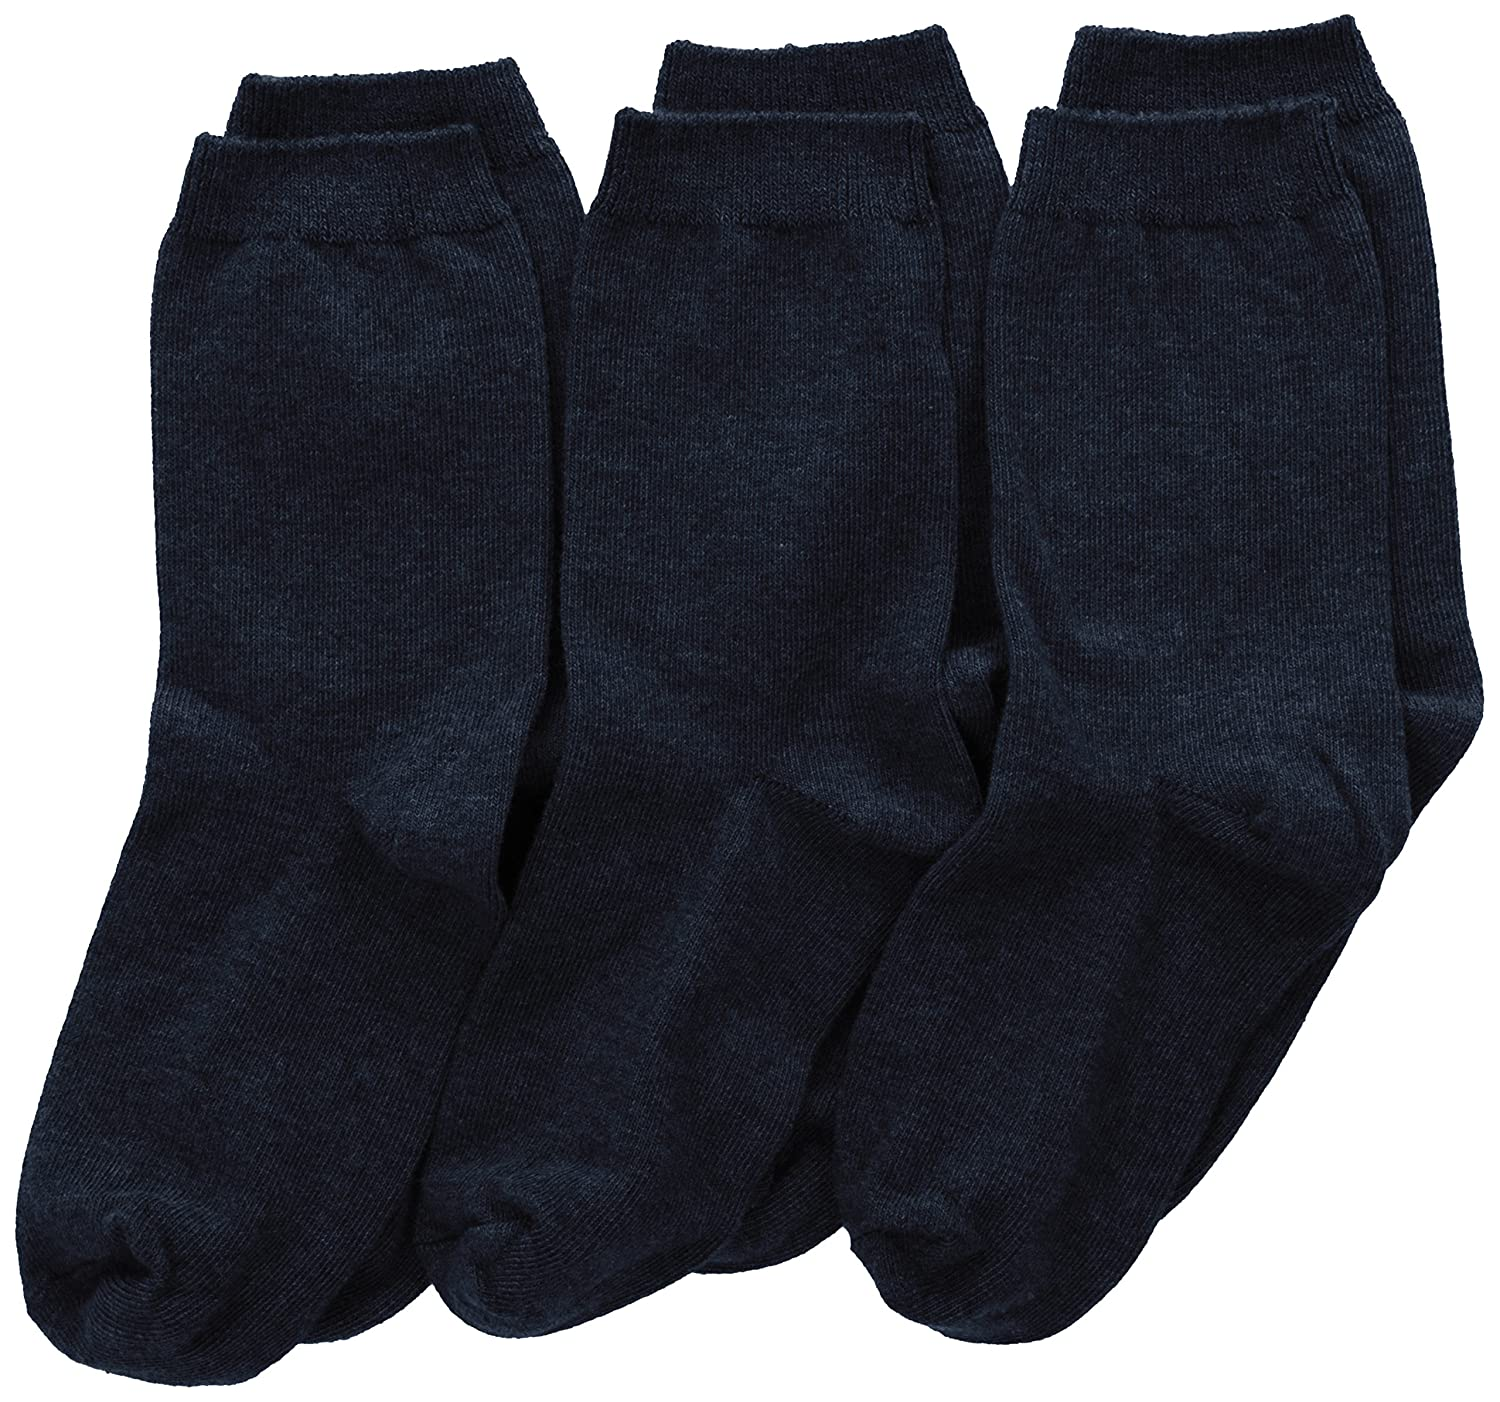 Jefferies Socks Big Boys' School Uniform Cotton Crew Sock Three-Pack Jefferies Socks Boys 8-20 8018